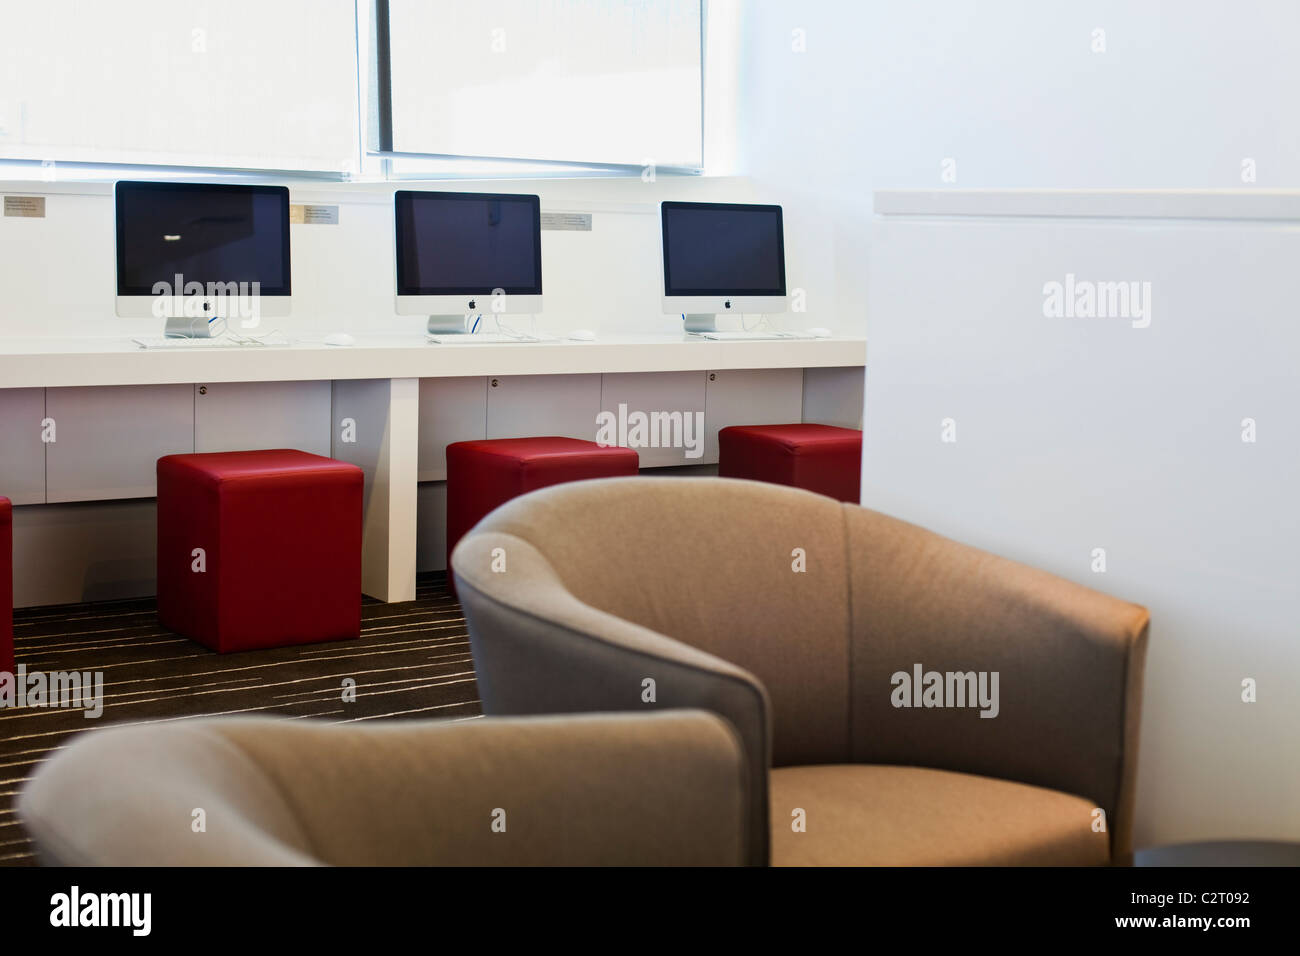 Internet point at Qantas Club Lounge. Cairns Domestic Airport, Cairns, Queensland, Australia - Stock Image